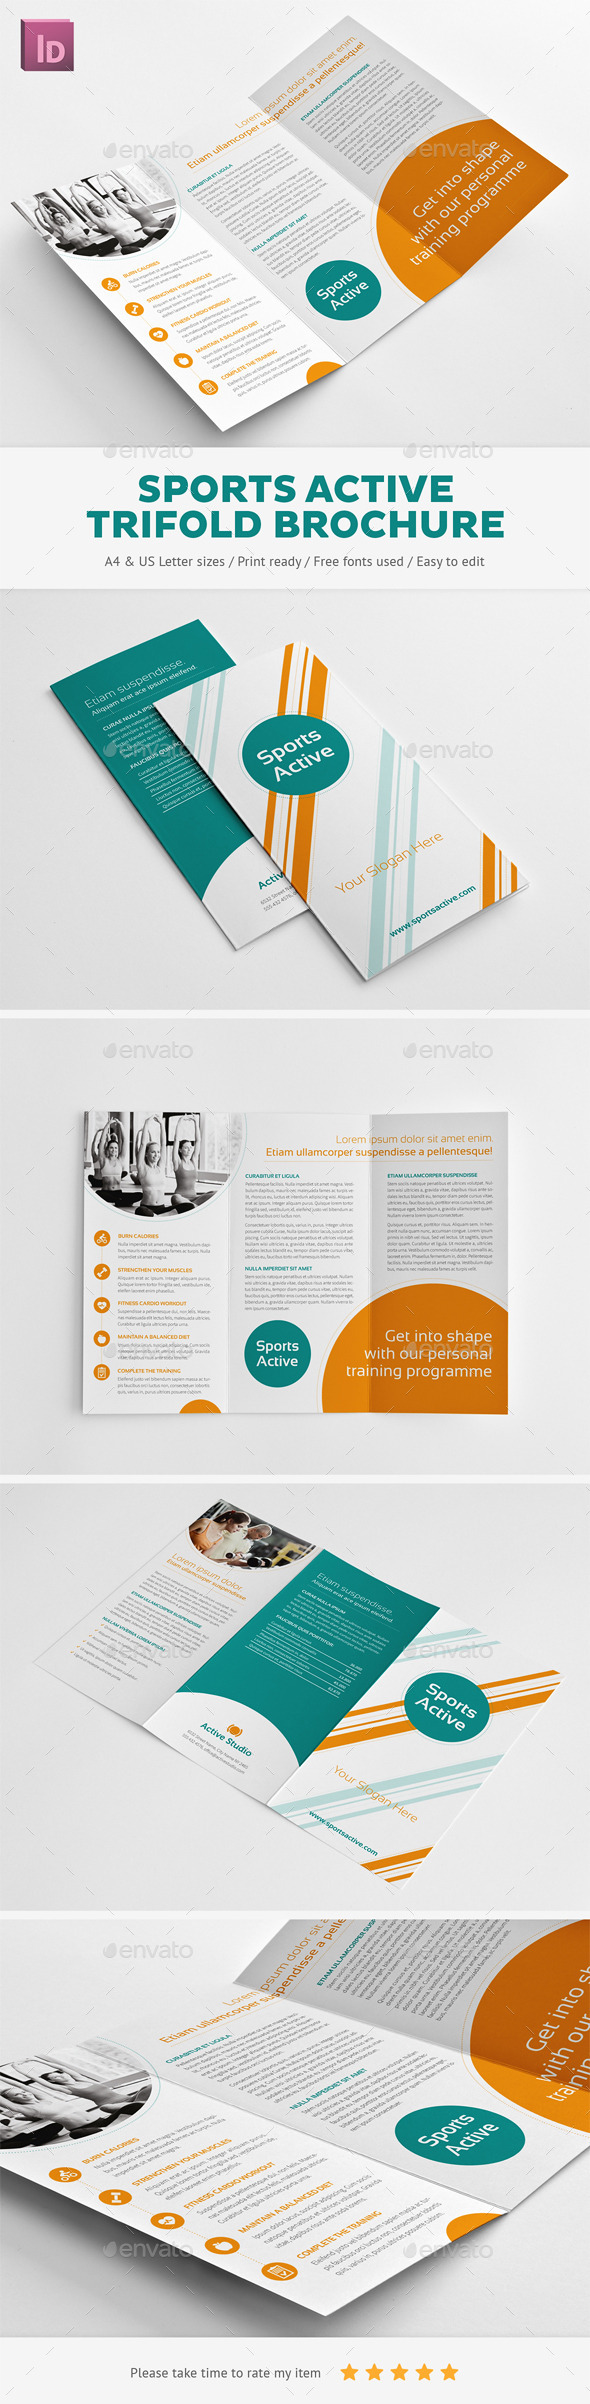 Sports Active Trifold Brochure - Corporate Brochures